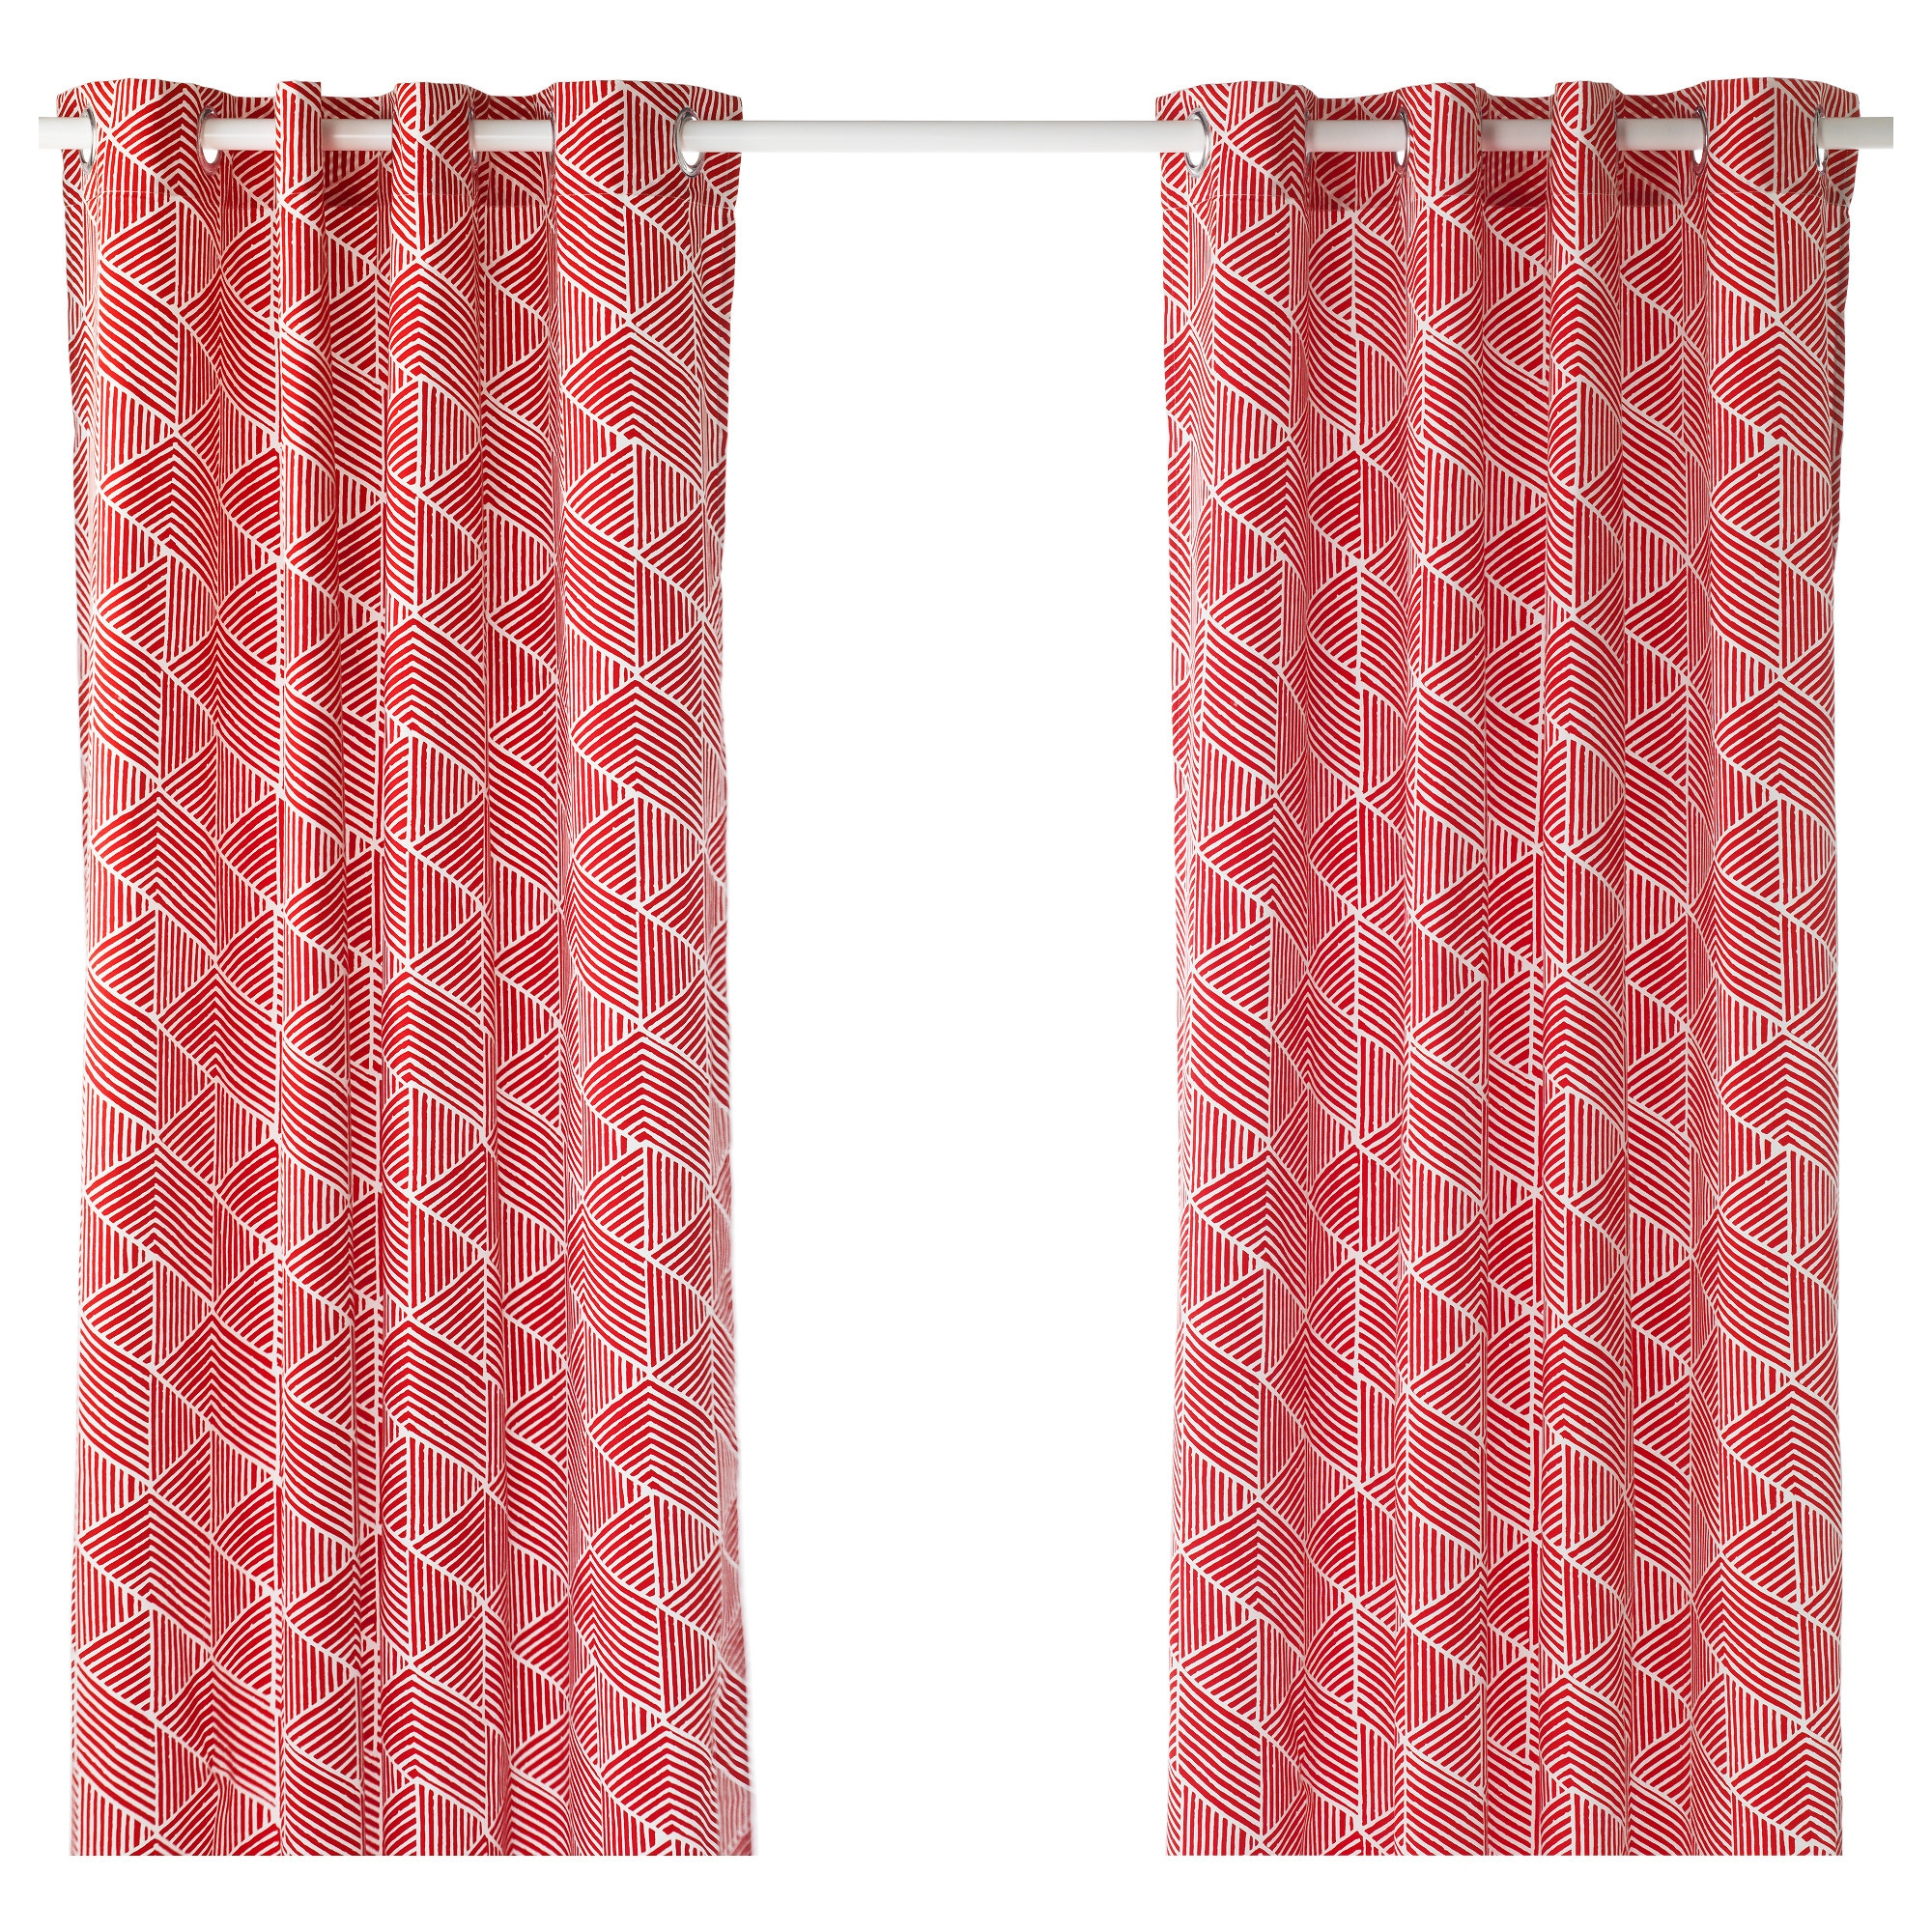 Yellow patterned curtains - Nunner Rt Curtains 1 Pair Red White Length 98 Width 57